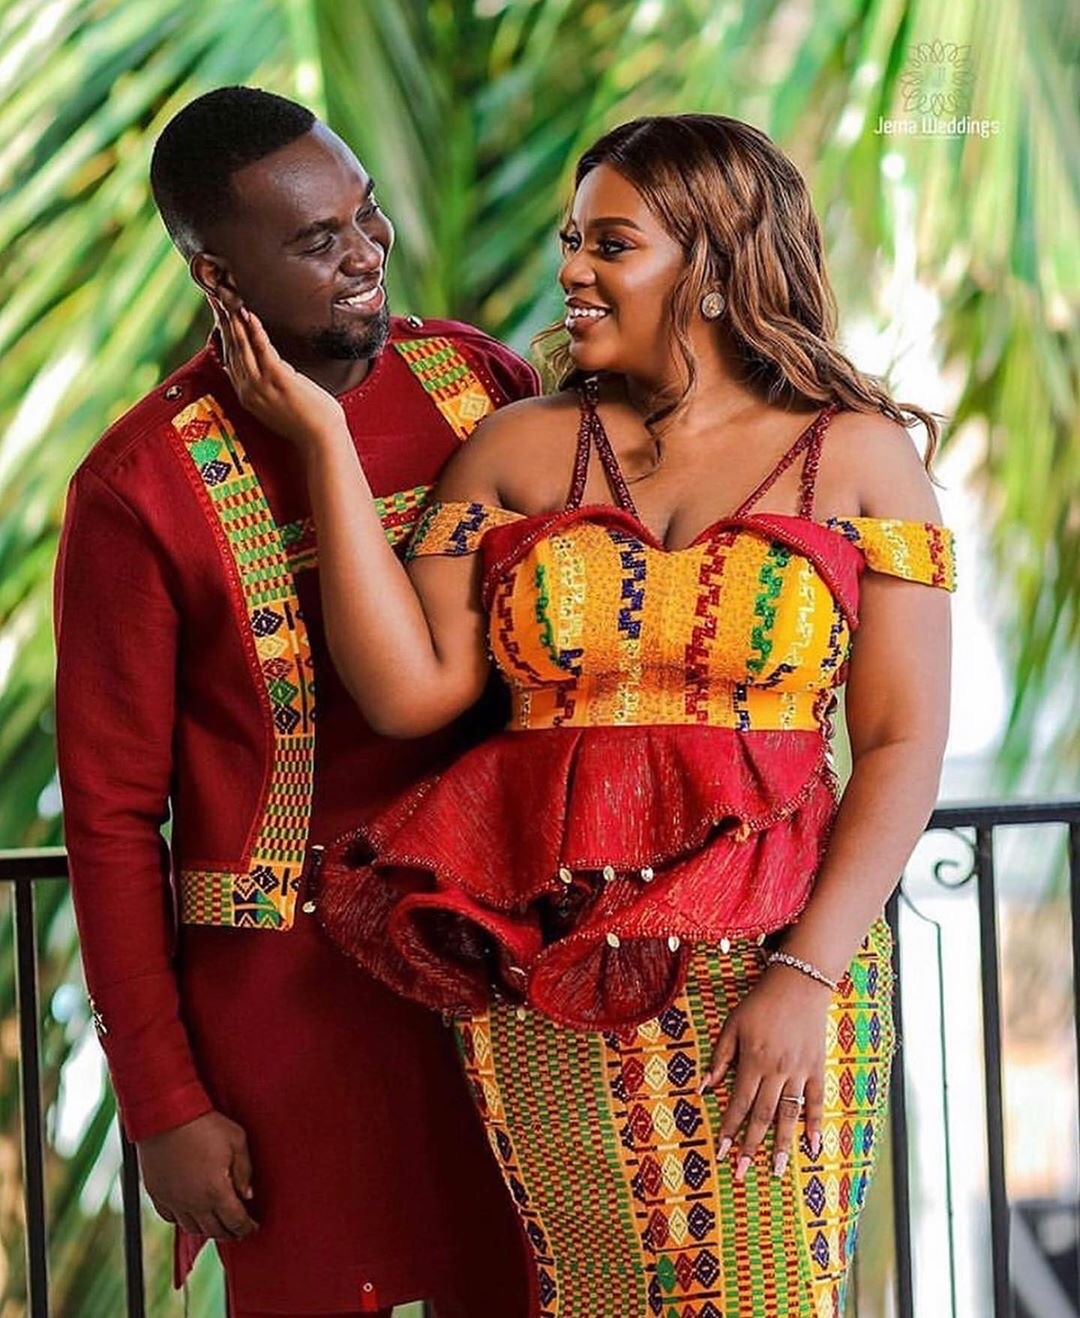 Here Are 8 Beautiful Photos From Joe Mettle And Selasie's Traditional Wedding